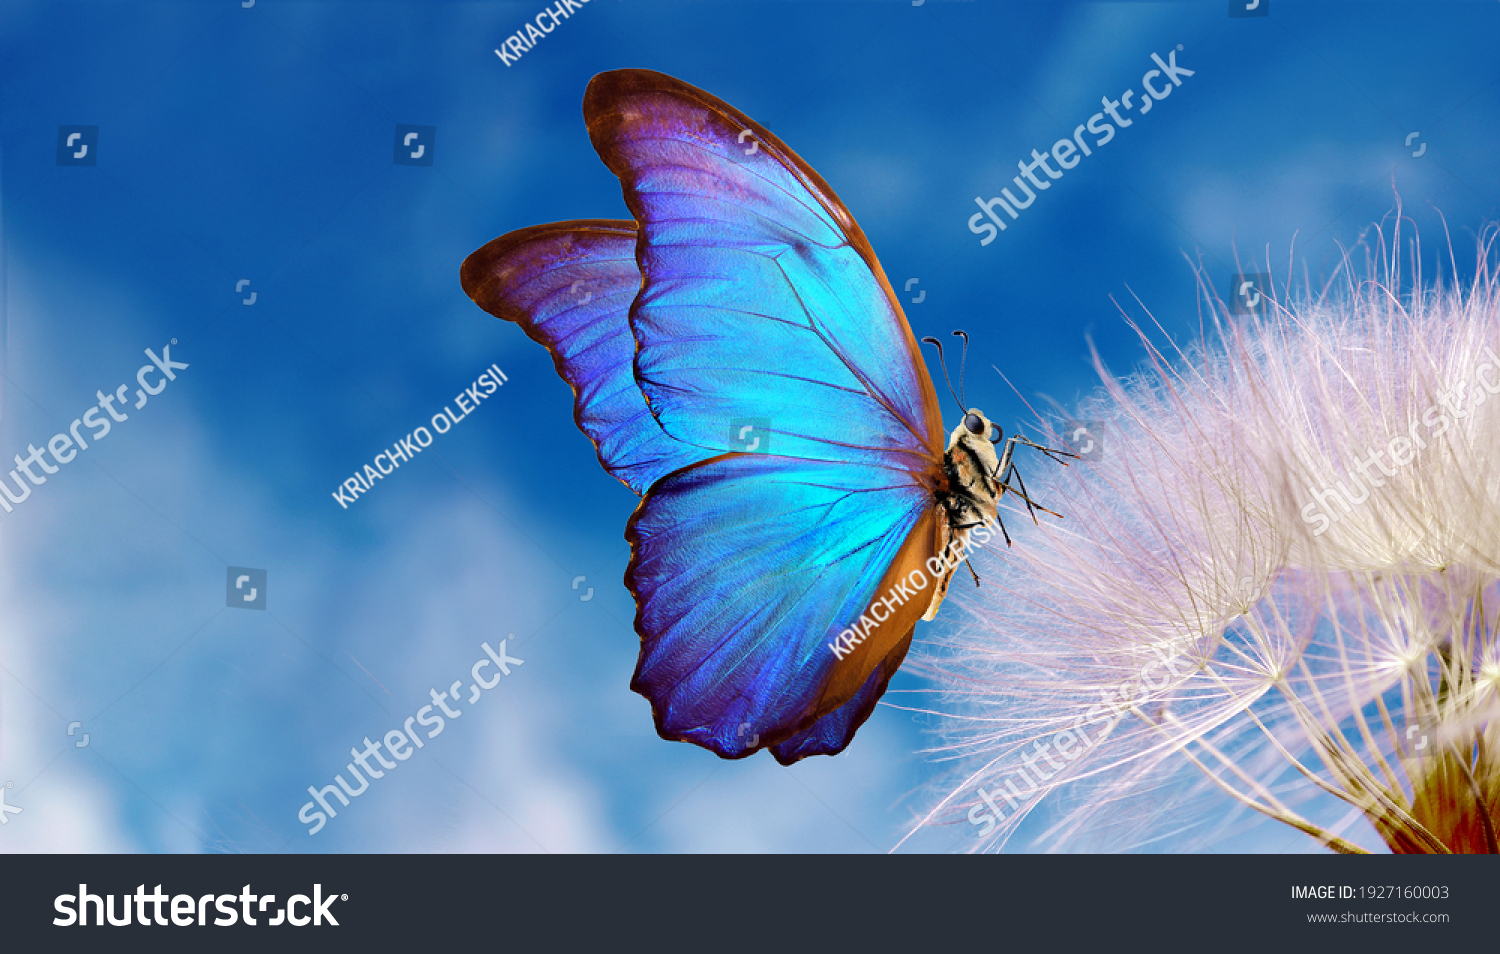 Natural pastel background. Morpho butterfly and dandelion. Seeds of a dandelion flower on a background of blue sky with clouds. Copy spaces #1927160003